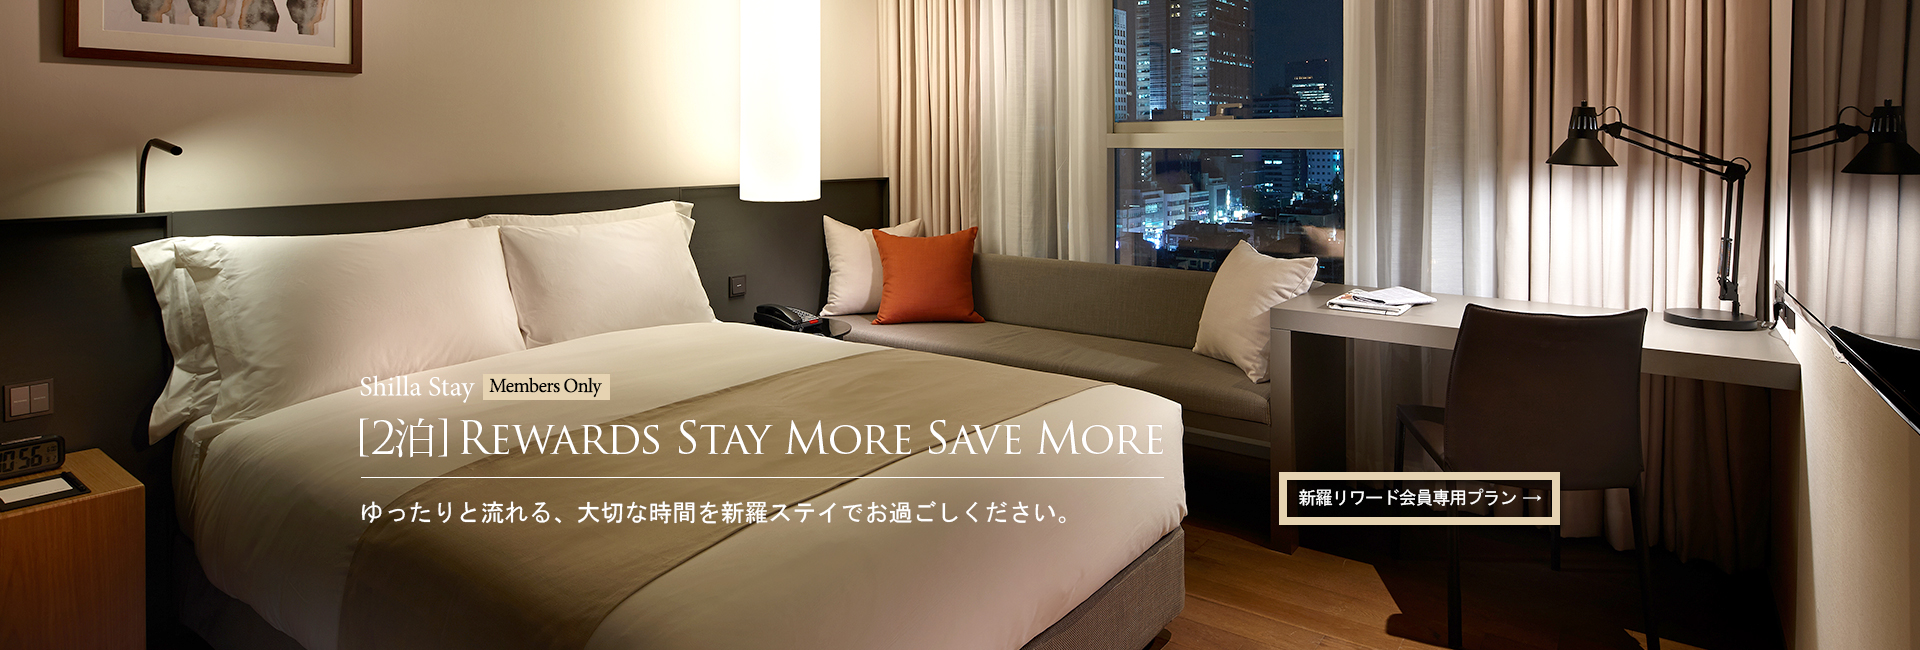 Shilla Stay / Rewards 2 Nights